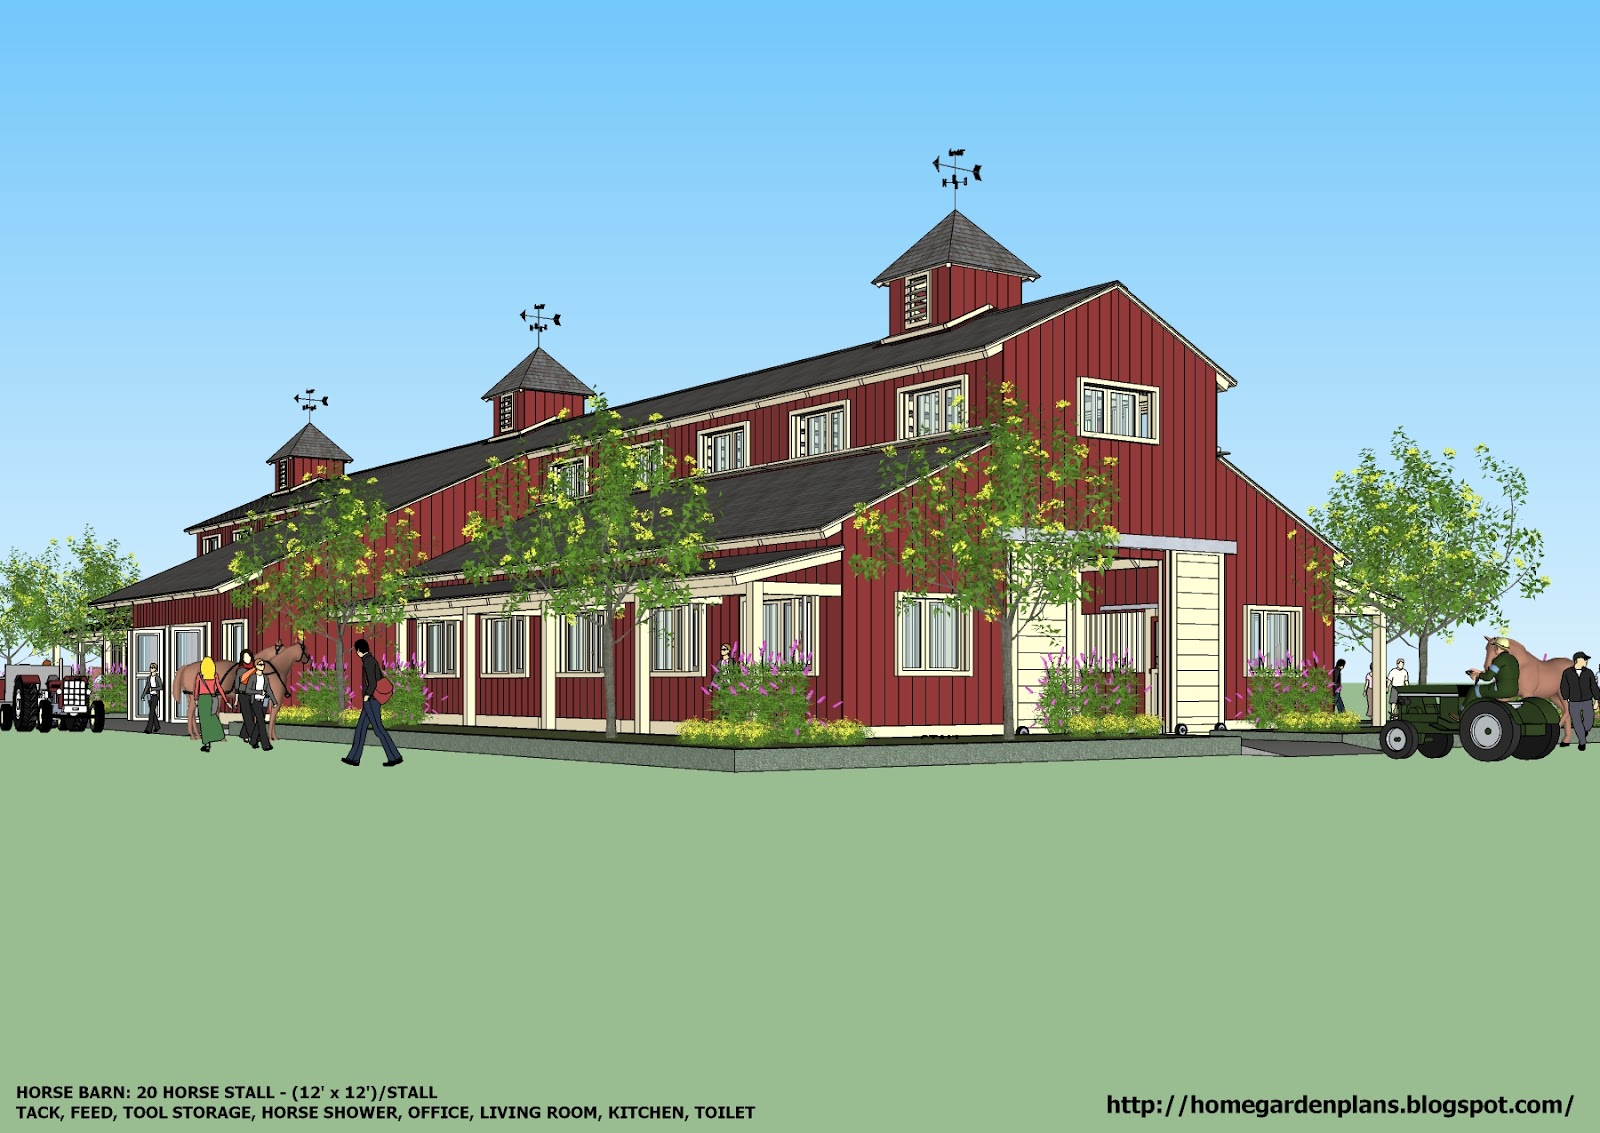 Home garden plans b20h large horse barn for 20 horse for Horse barn designs